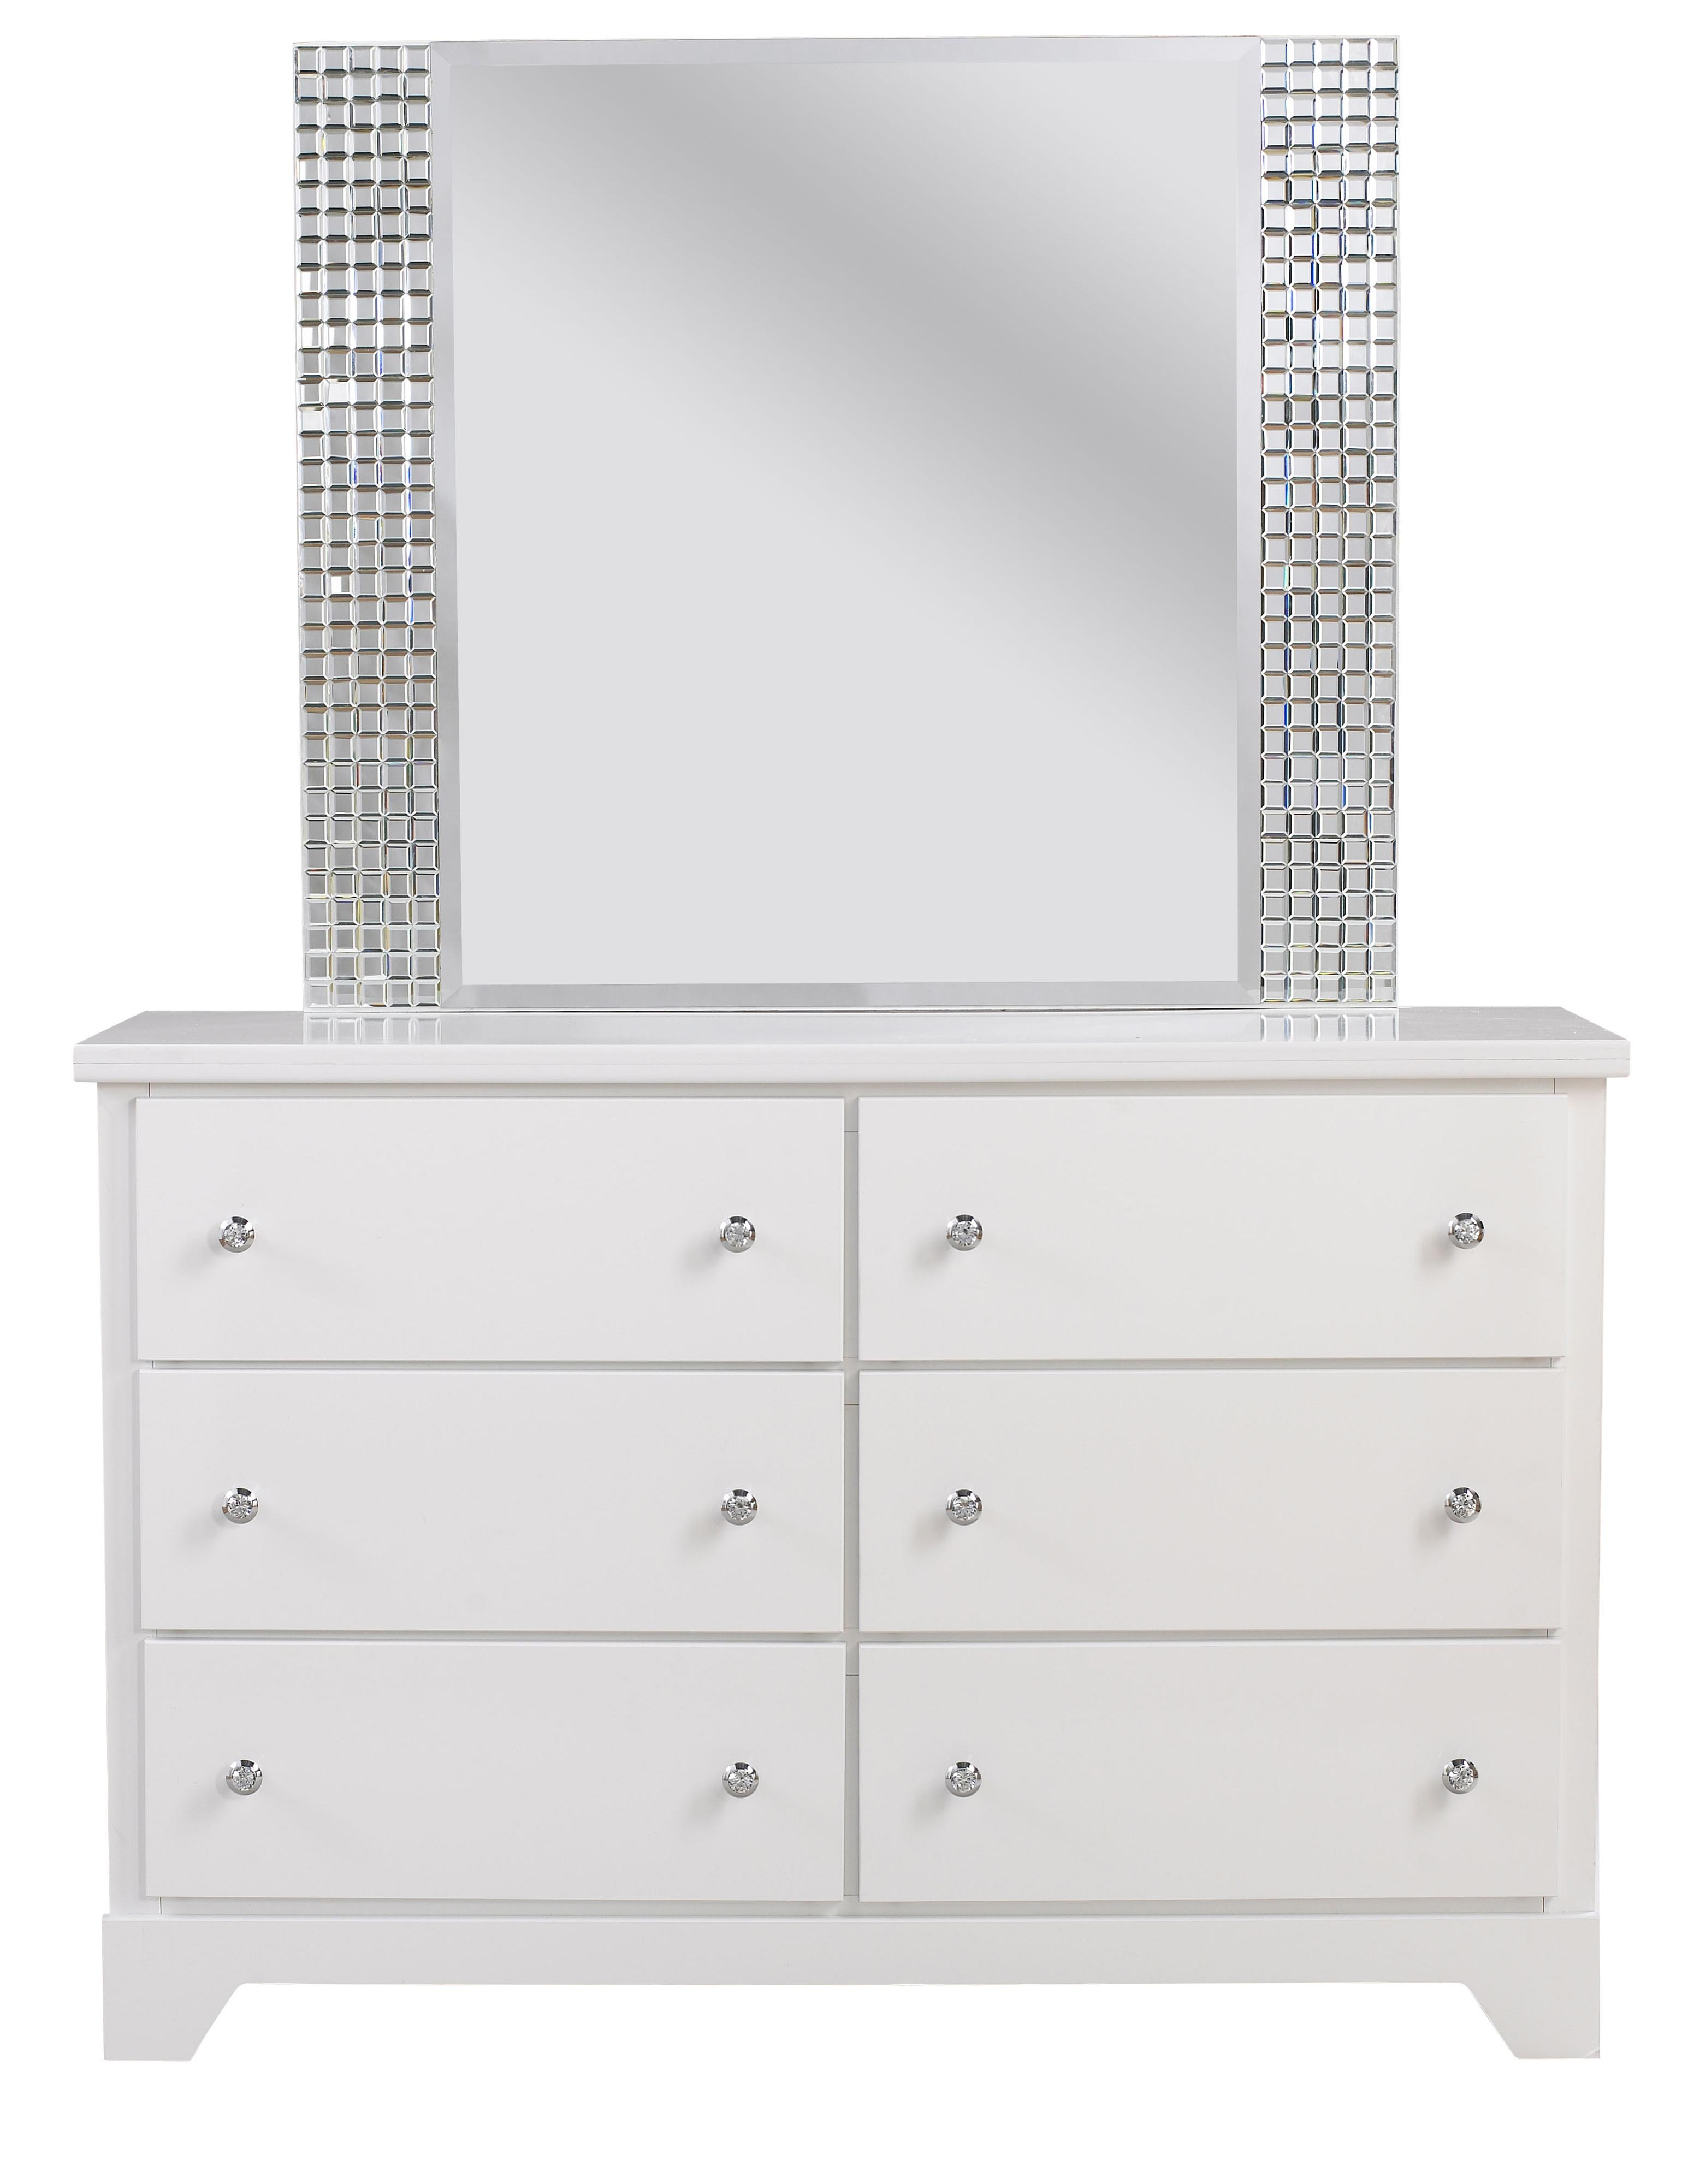 Standard Furniture Marilyn Youth Dresser and Mirror Combo - Item Number: 66309+18